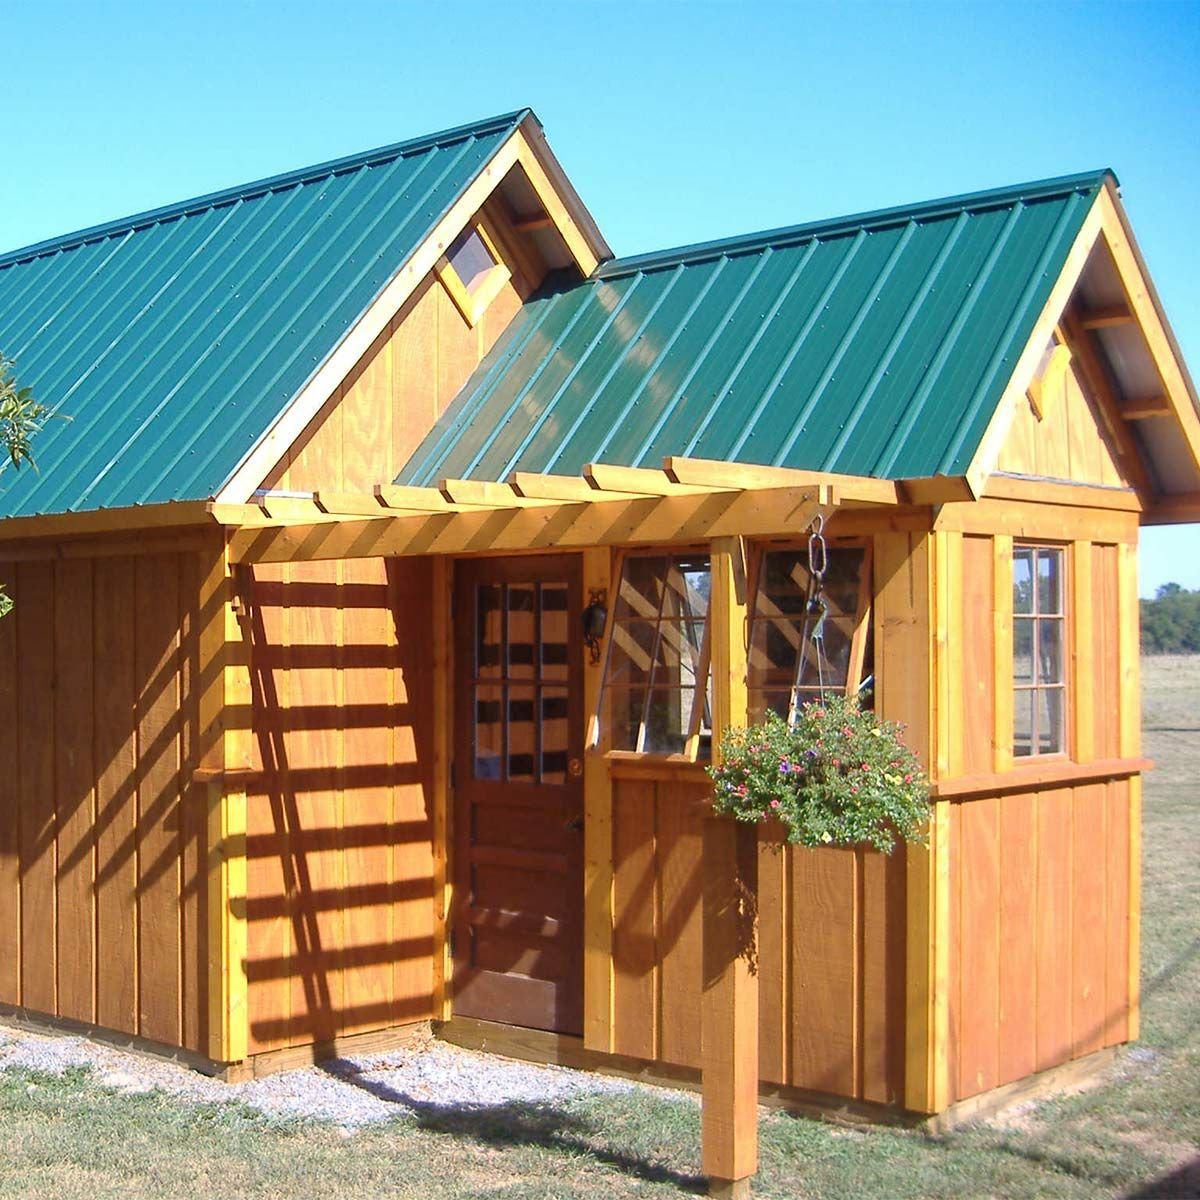 Cheapest Way To Build A House Yourself Apartmentsforrent Housesforsale Renttoownhomes Apartmentguide Building A Shed Building A Storage Shed Diy Shed Plans